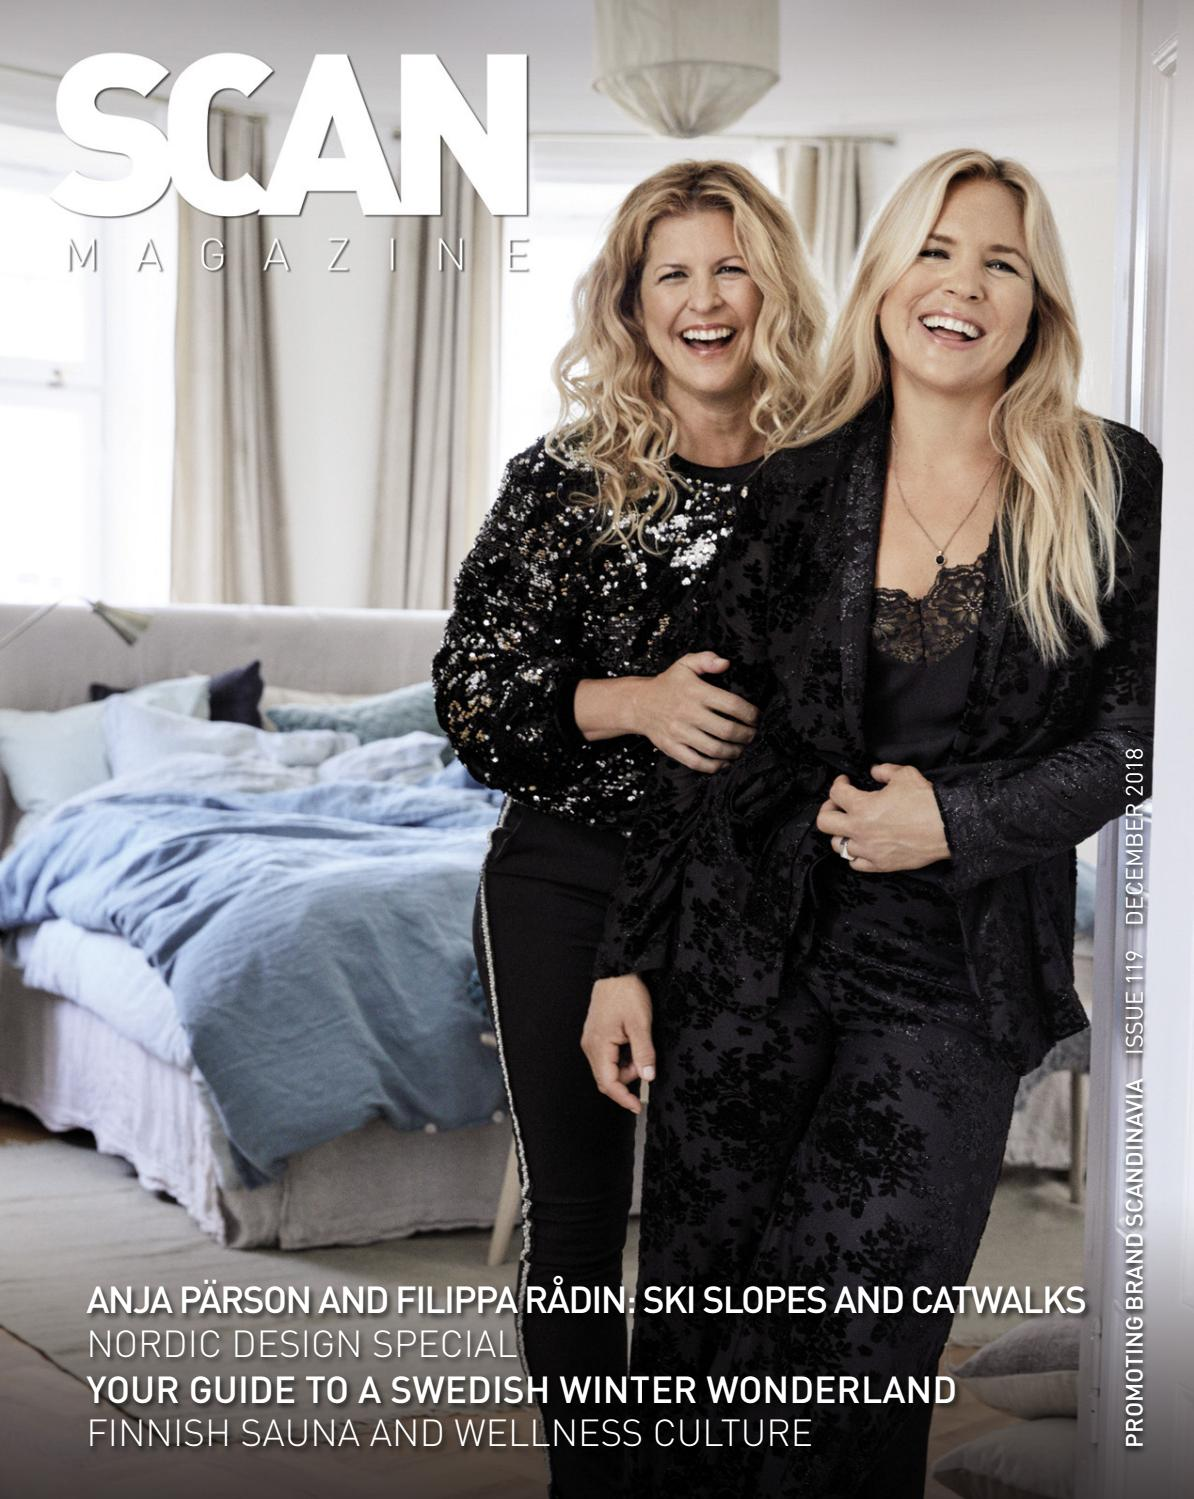 Amplifeied Pro December Wellness Calendar 2020 Scan Magazine, Issue 119, December 2018 by Scan Group   issuu